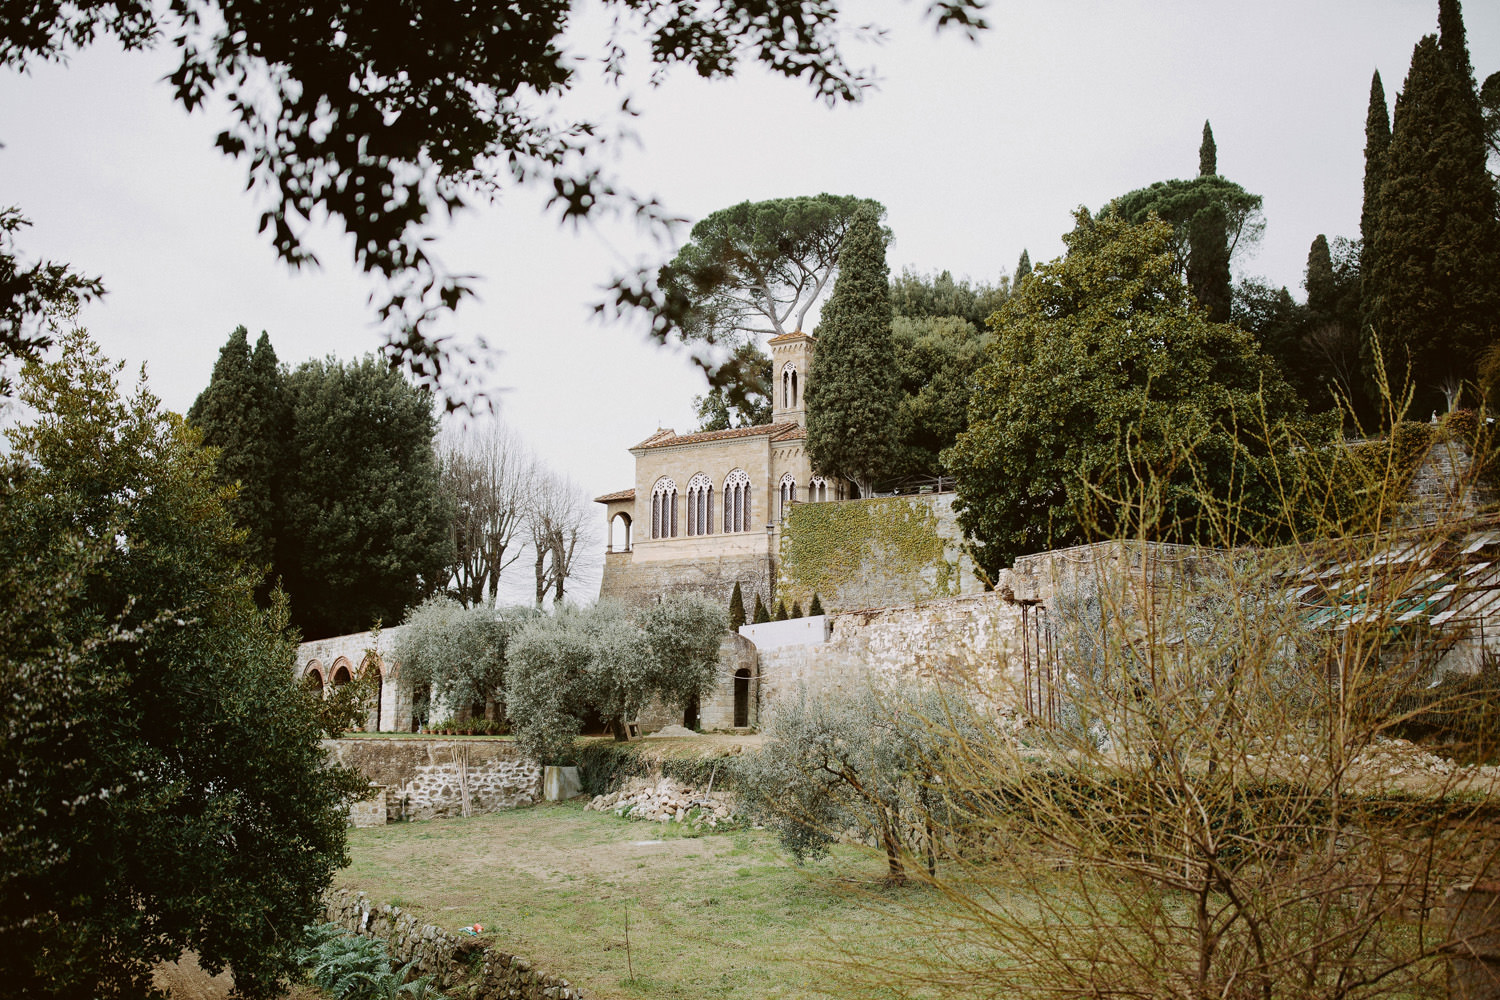 Villa Le Fontanelle surrounded by gardens and olive trees